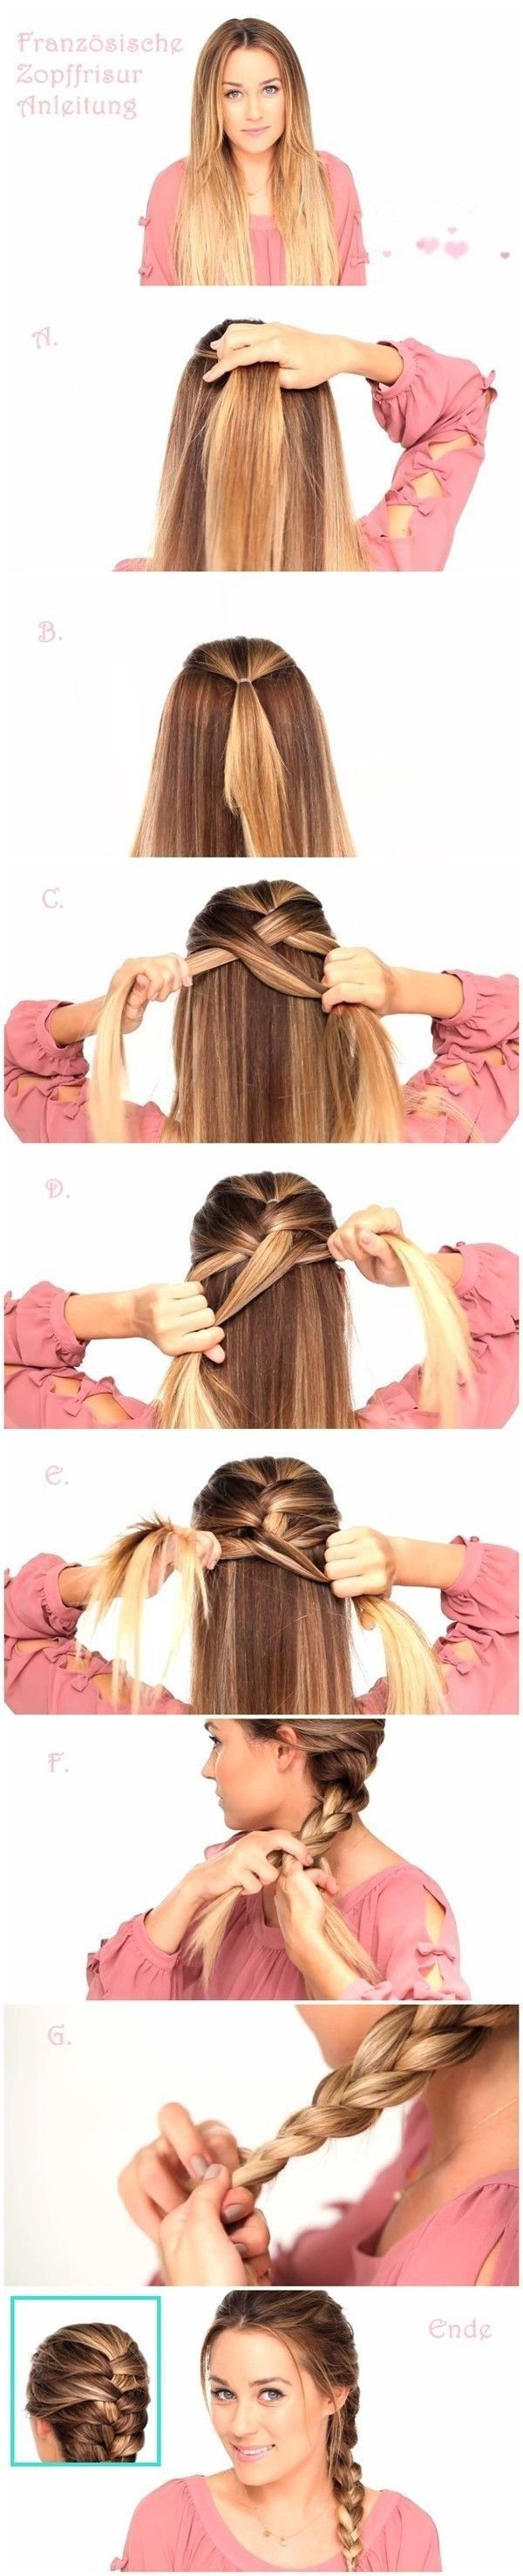 1000 Ideas About Coiffures On Pinterest Hair Braid And Updo